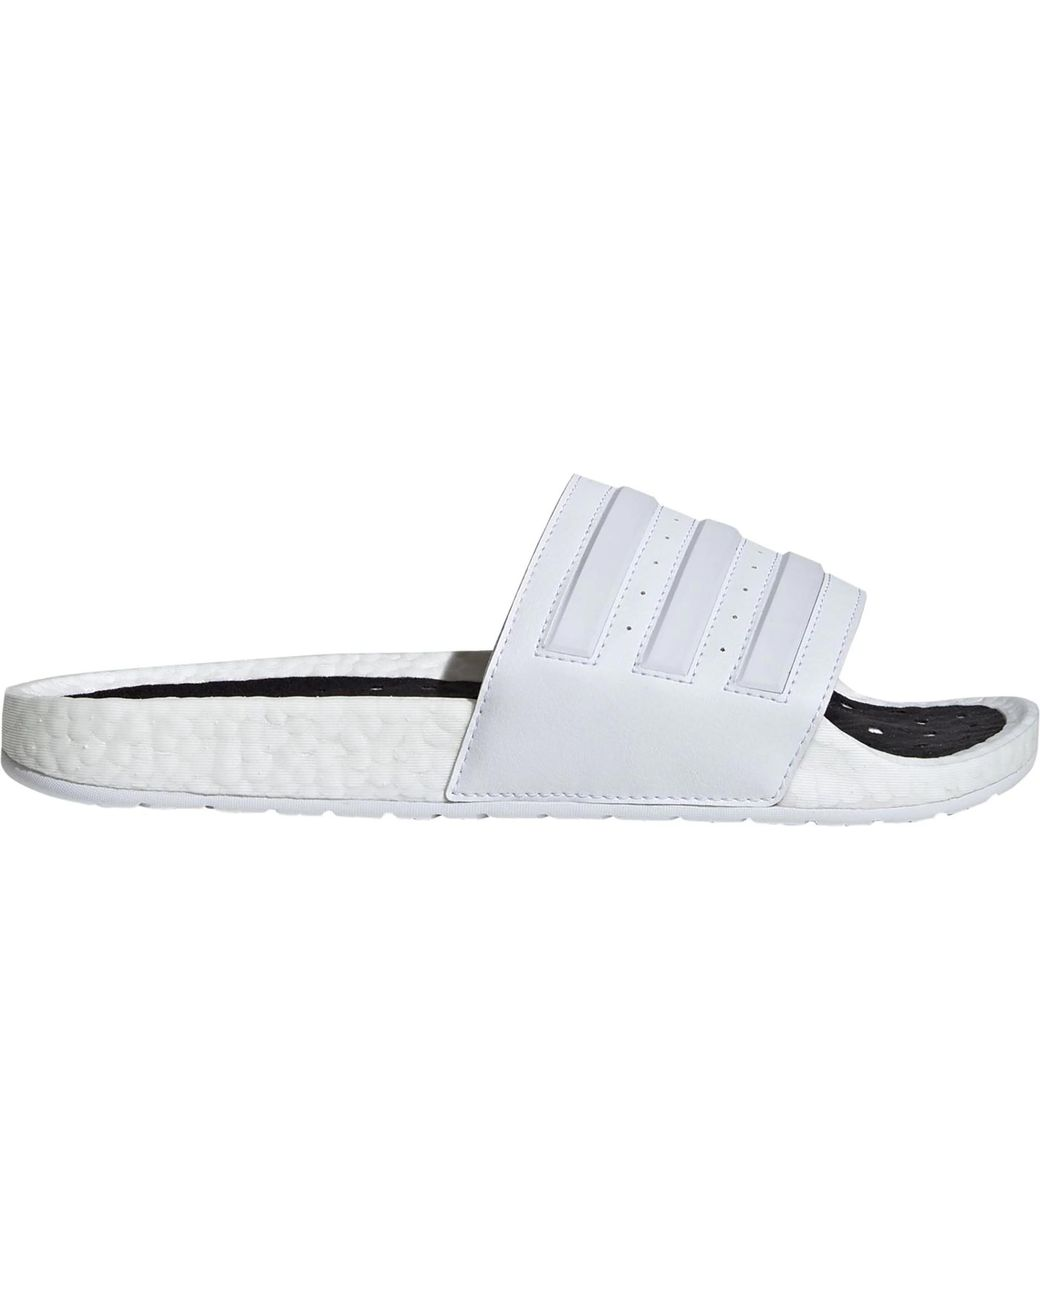 adidas adilette boost homme